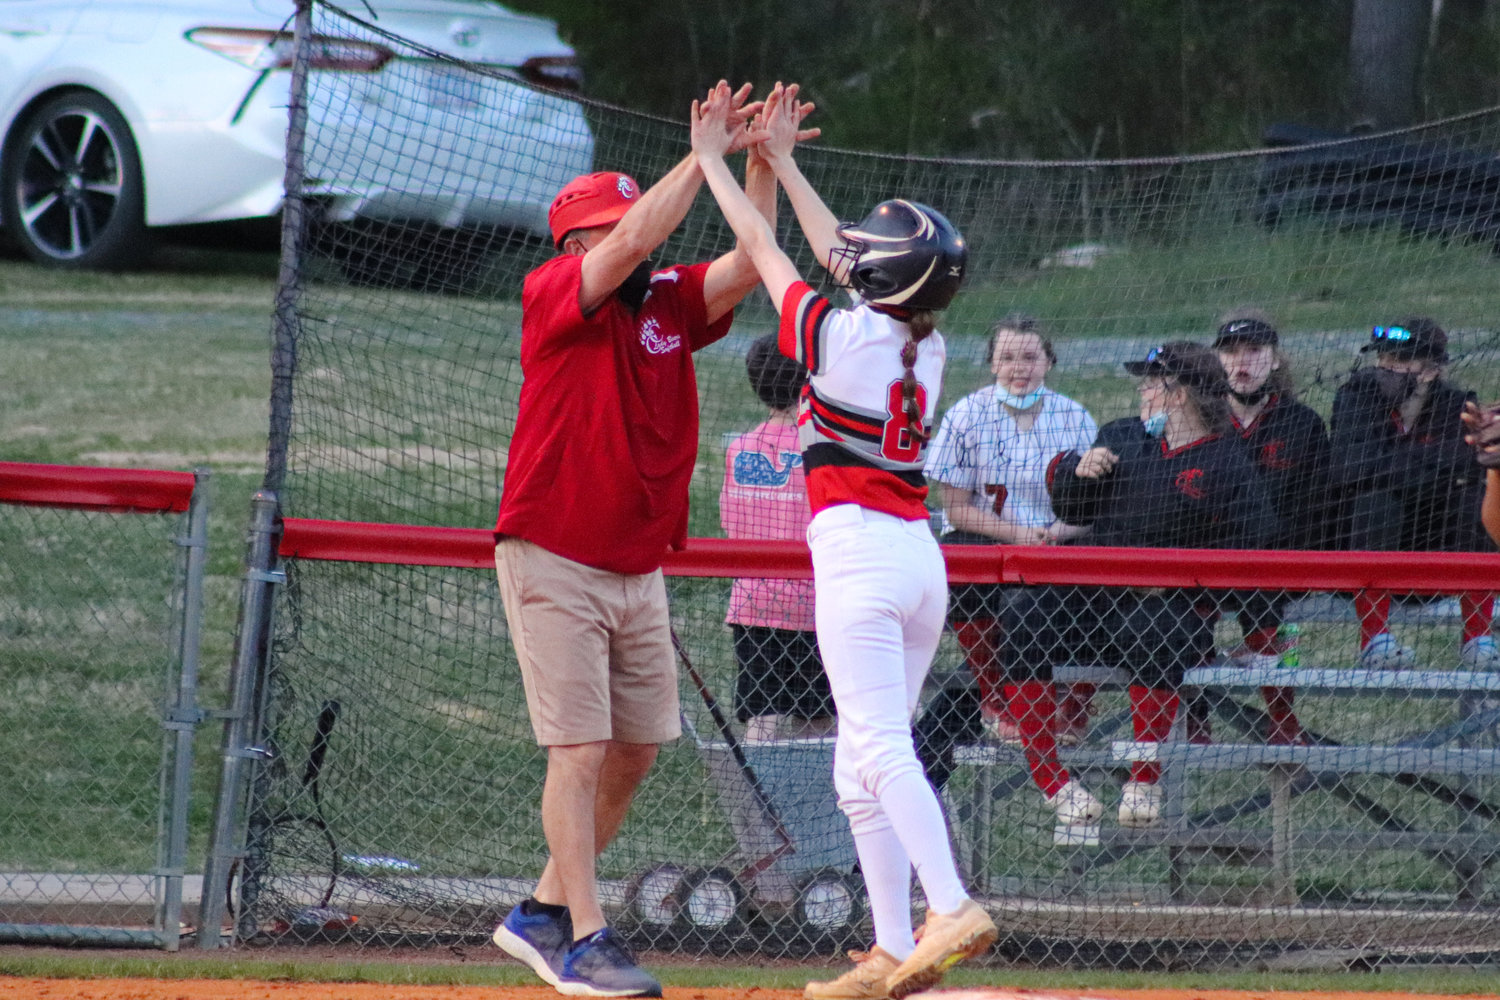 Chatham Central junior Gracie Gaines (8) celebrates with her head coach, Jerry Polston, at third base after a 2-RBI triple in the second inning of her team's 12-0 win over North Rowan on March 30.